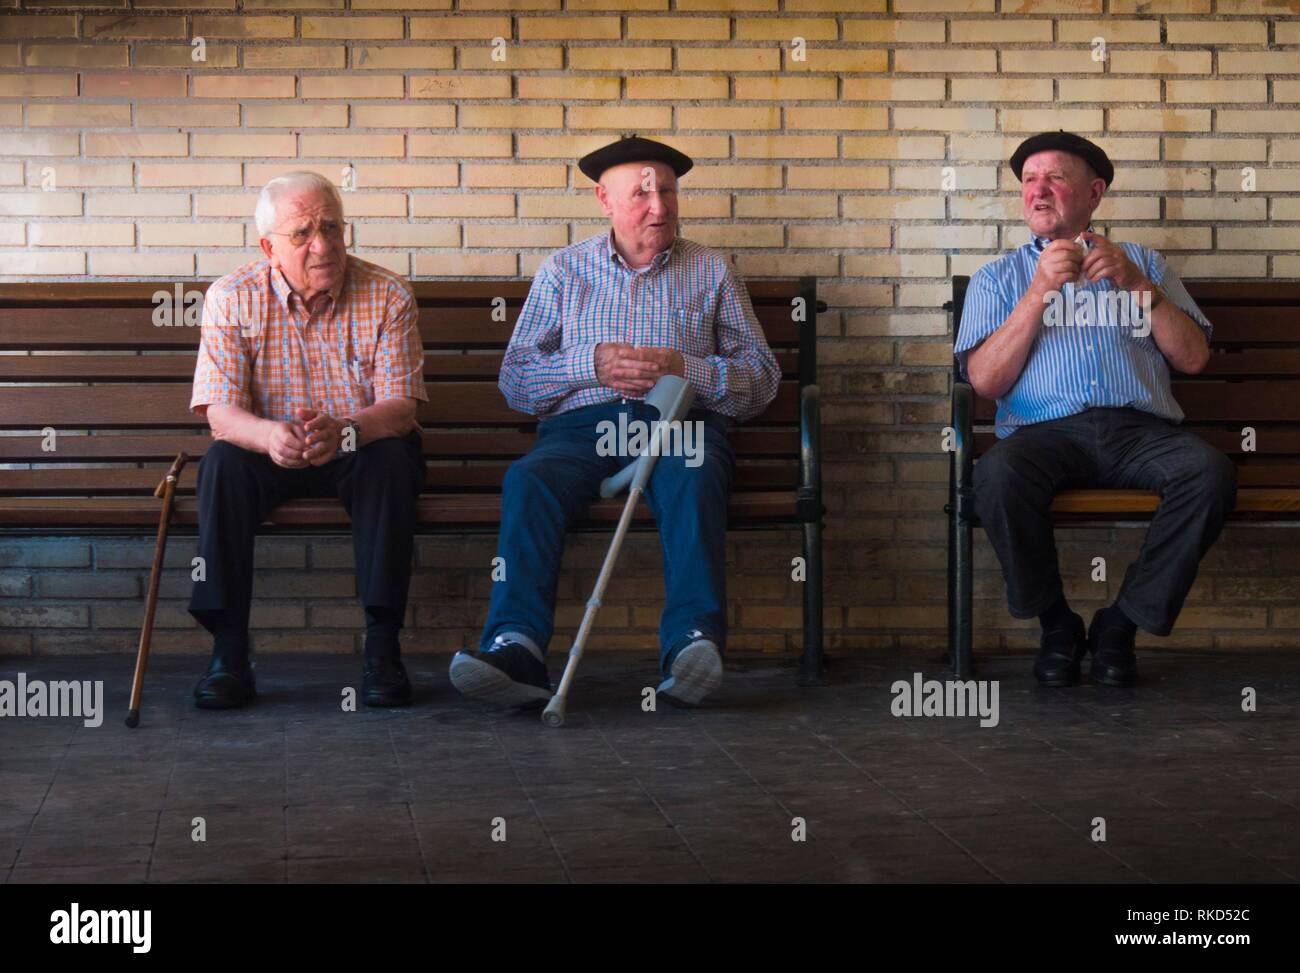 Spain,Vizcaya, Basque Country, Guernica, older men with the typical ''boina'' hat. - Stock Image